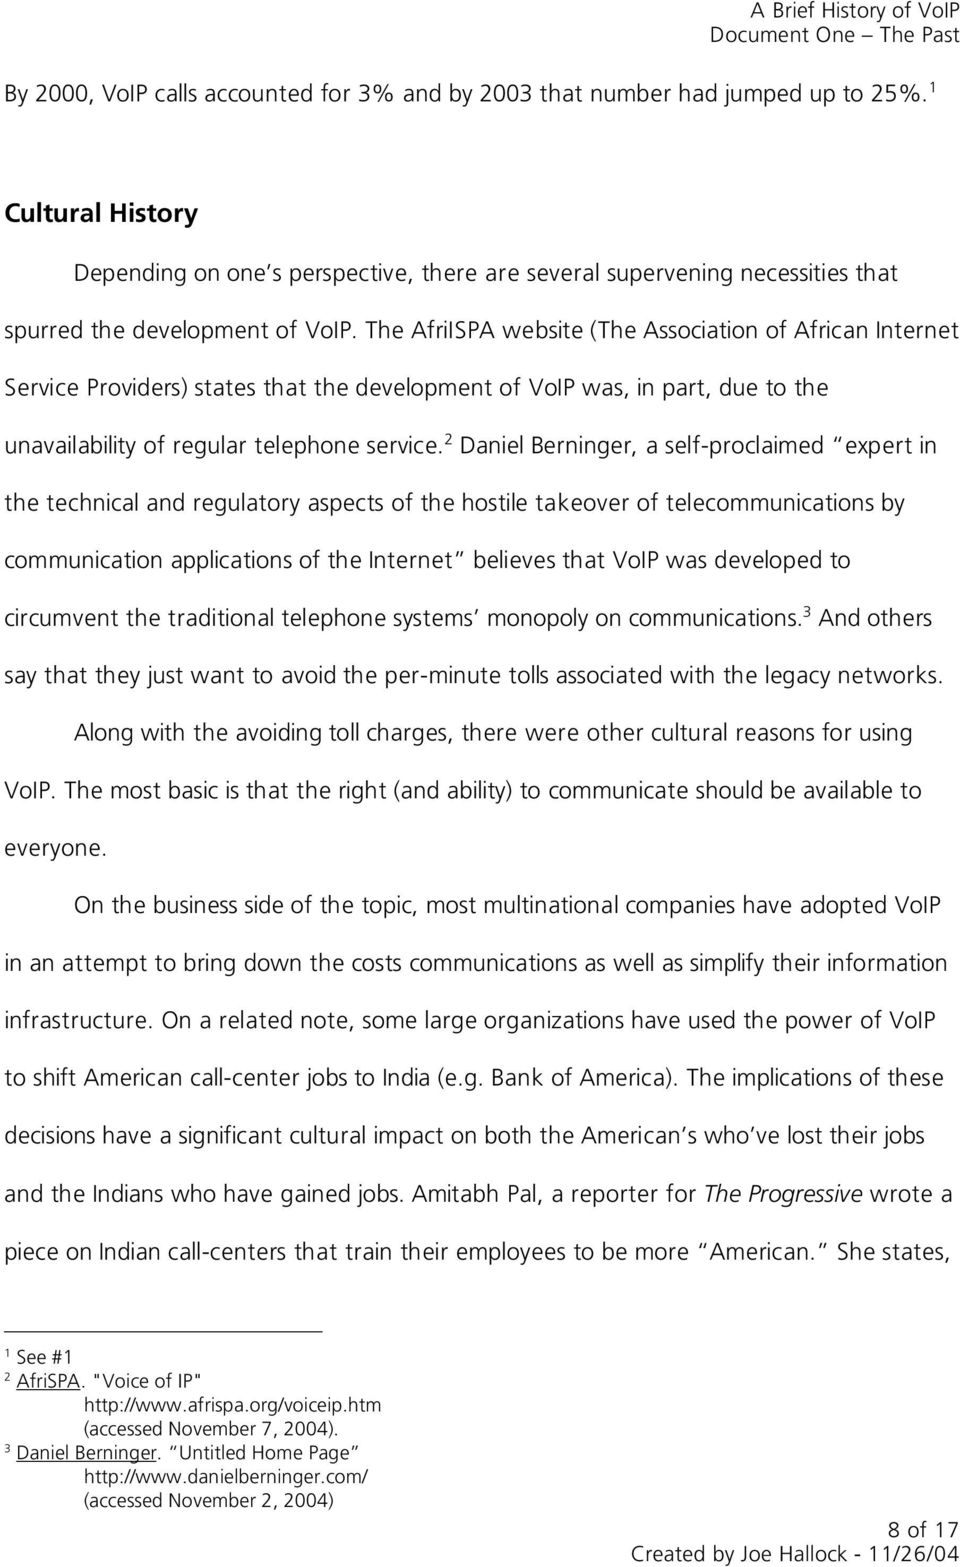 The AfriISPA website (The Association of African Internet Service Providers) states that the development of VoIP was, in part, due to the unavailability of regular telephone service.